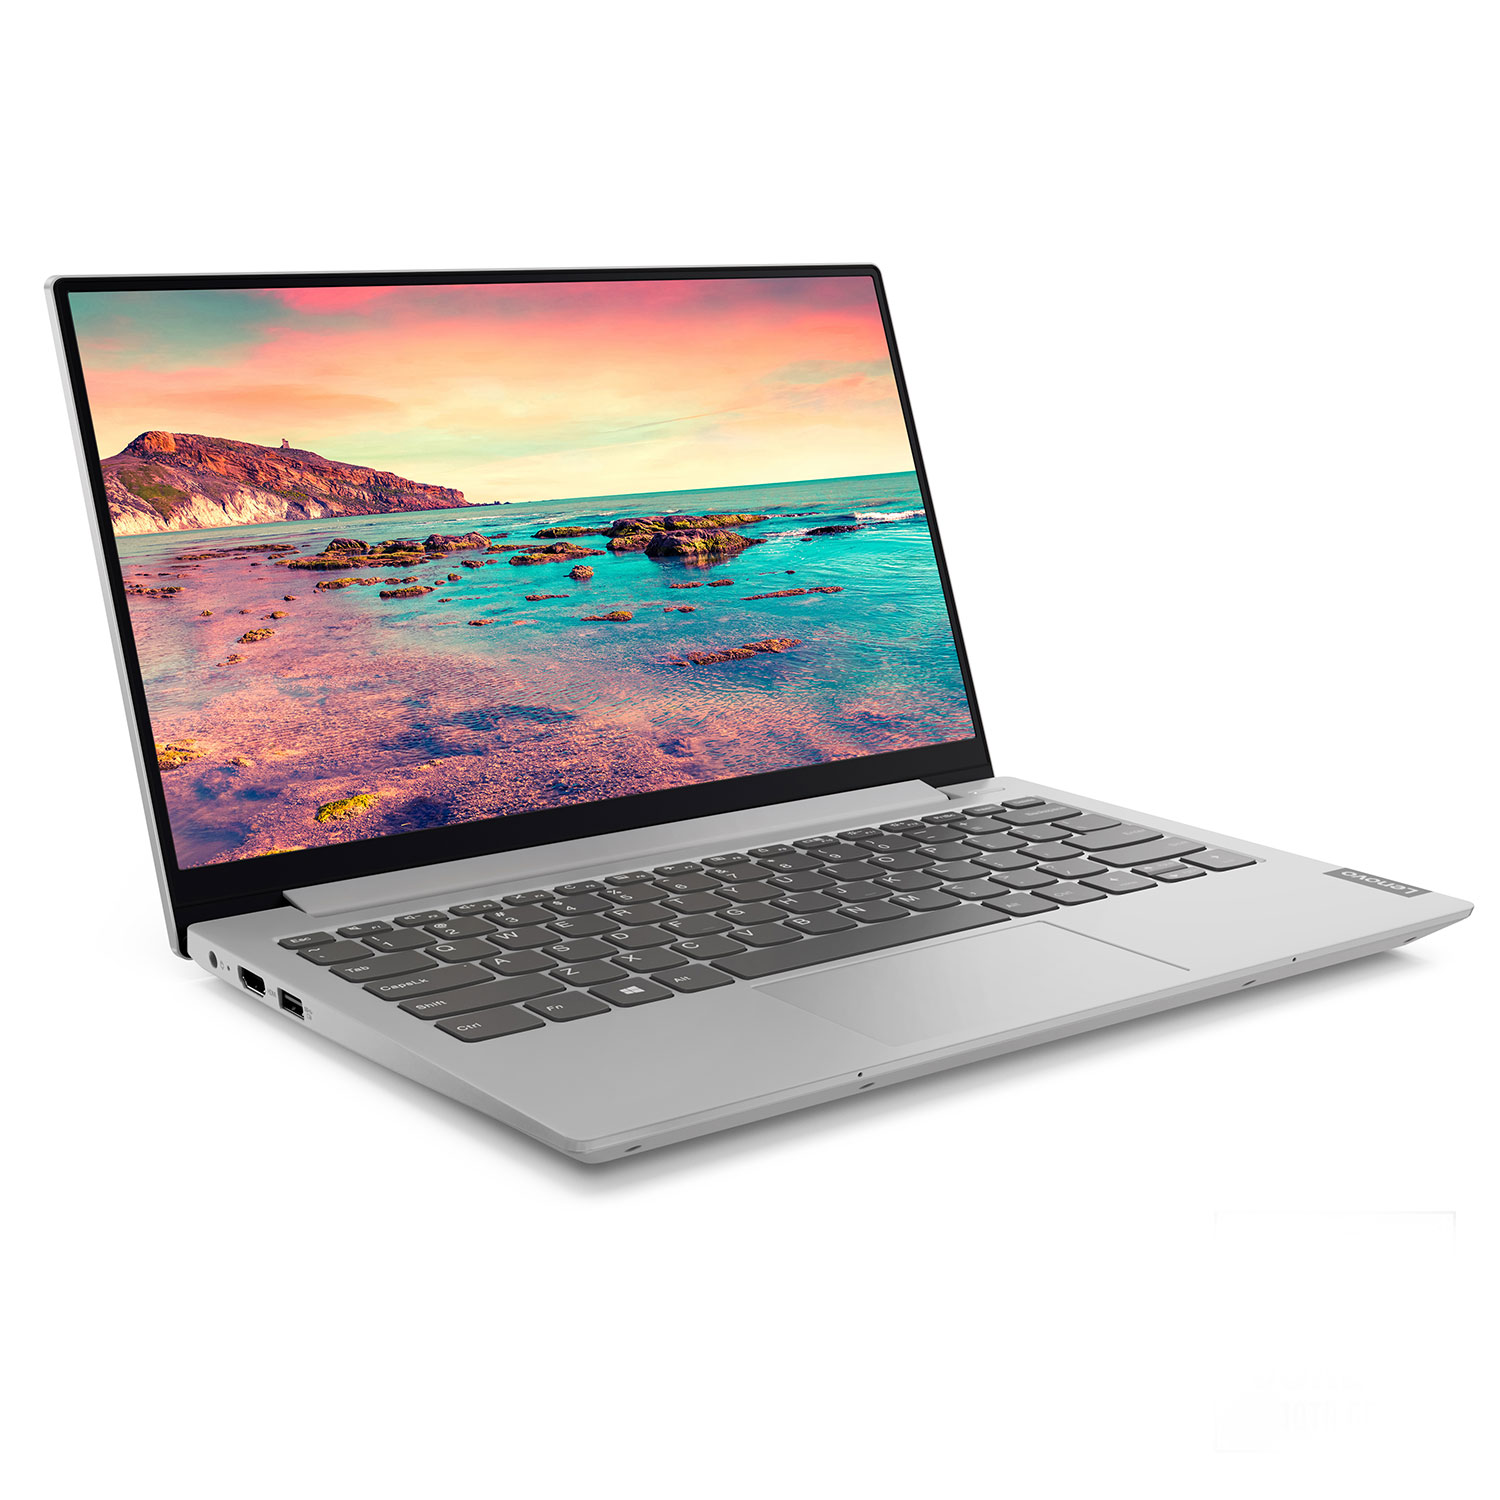 Lenovo ideapad S340 13.3 Laptop